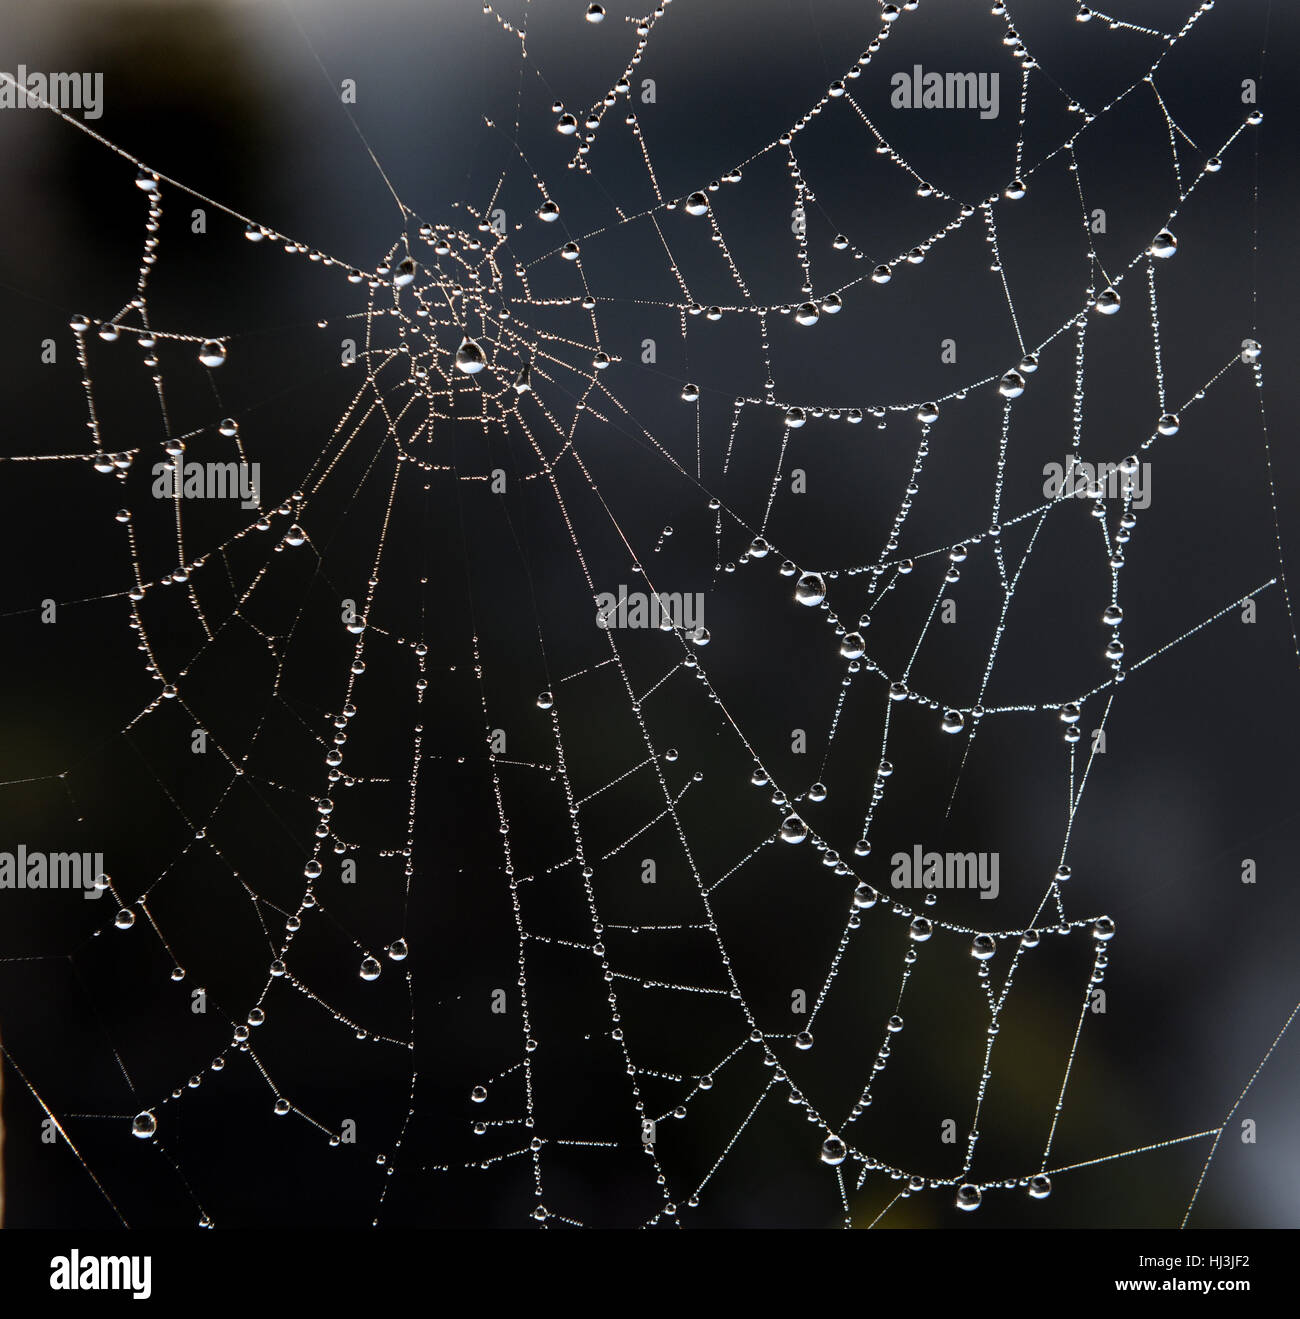 Droplets of water on spiders web - Stock Image